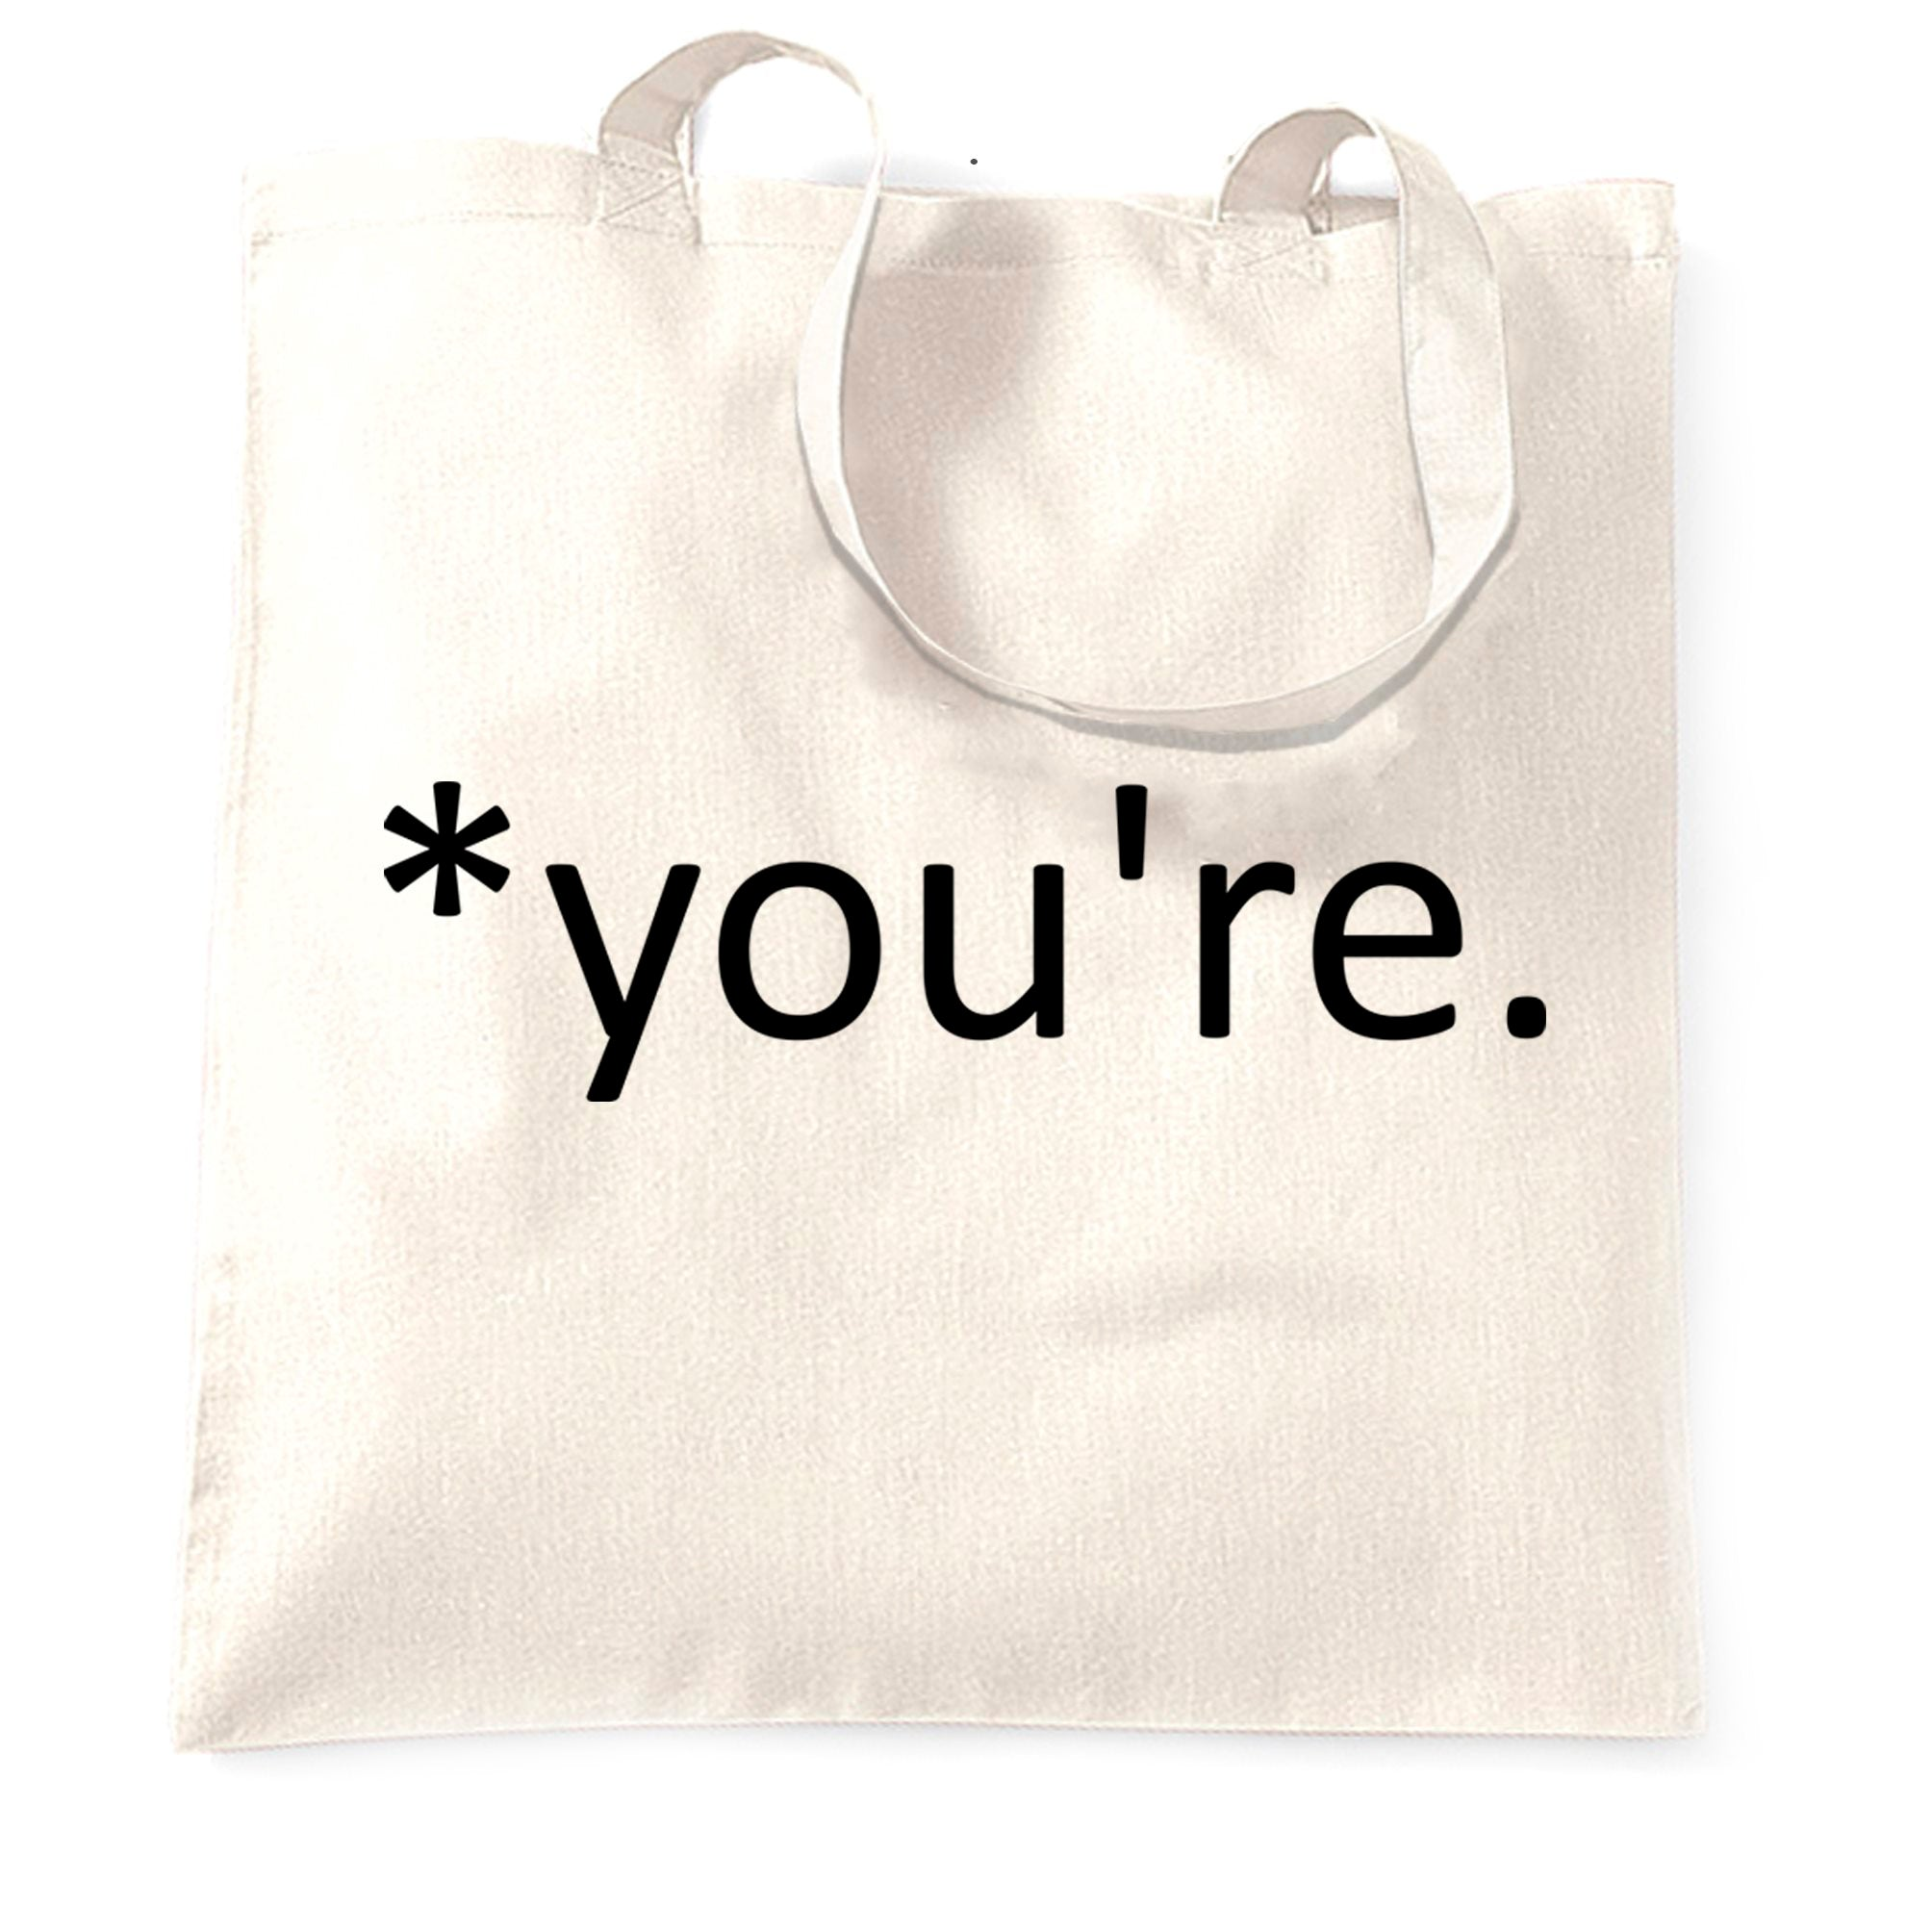 Correction of the Proper 'You're' Funny Tote Bag Joke